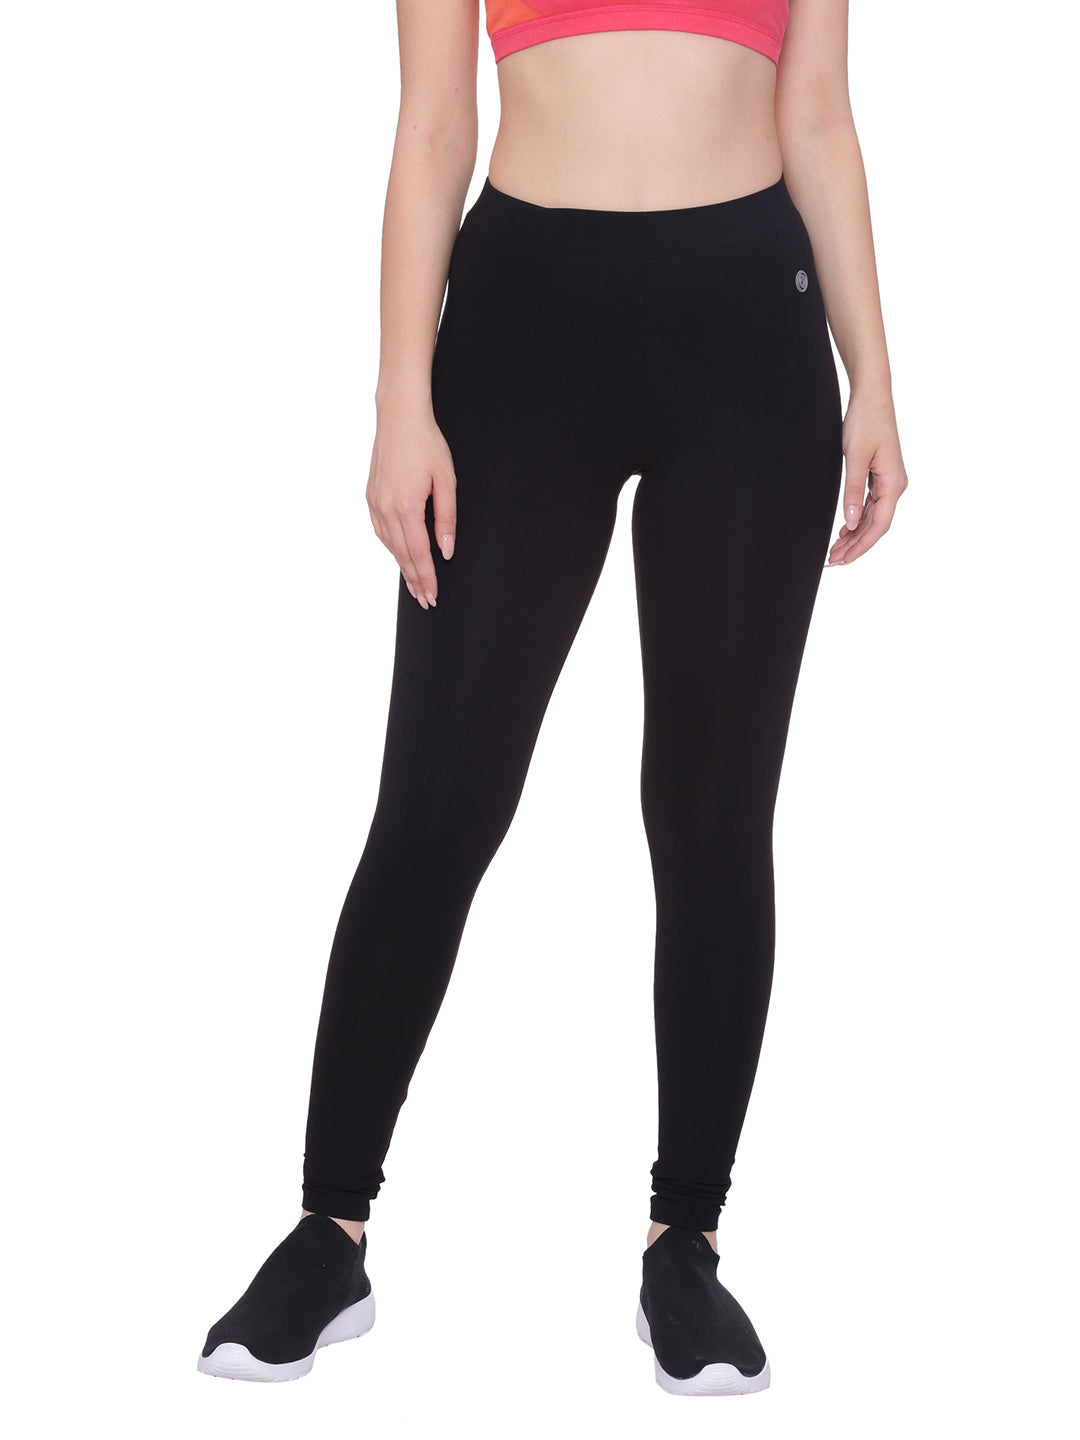 Black colored basic high waisted cotton leggings